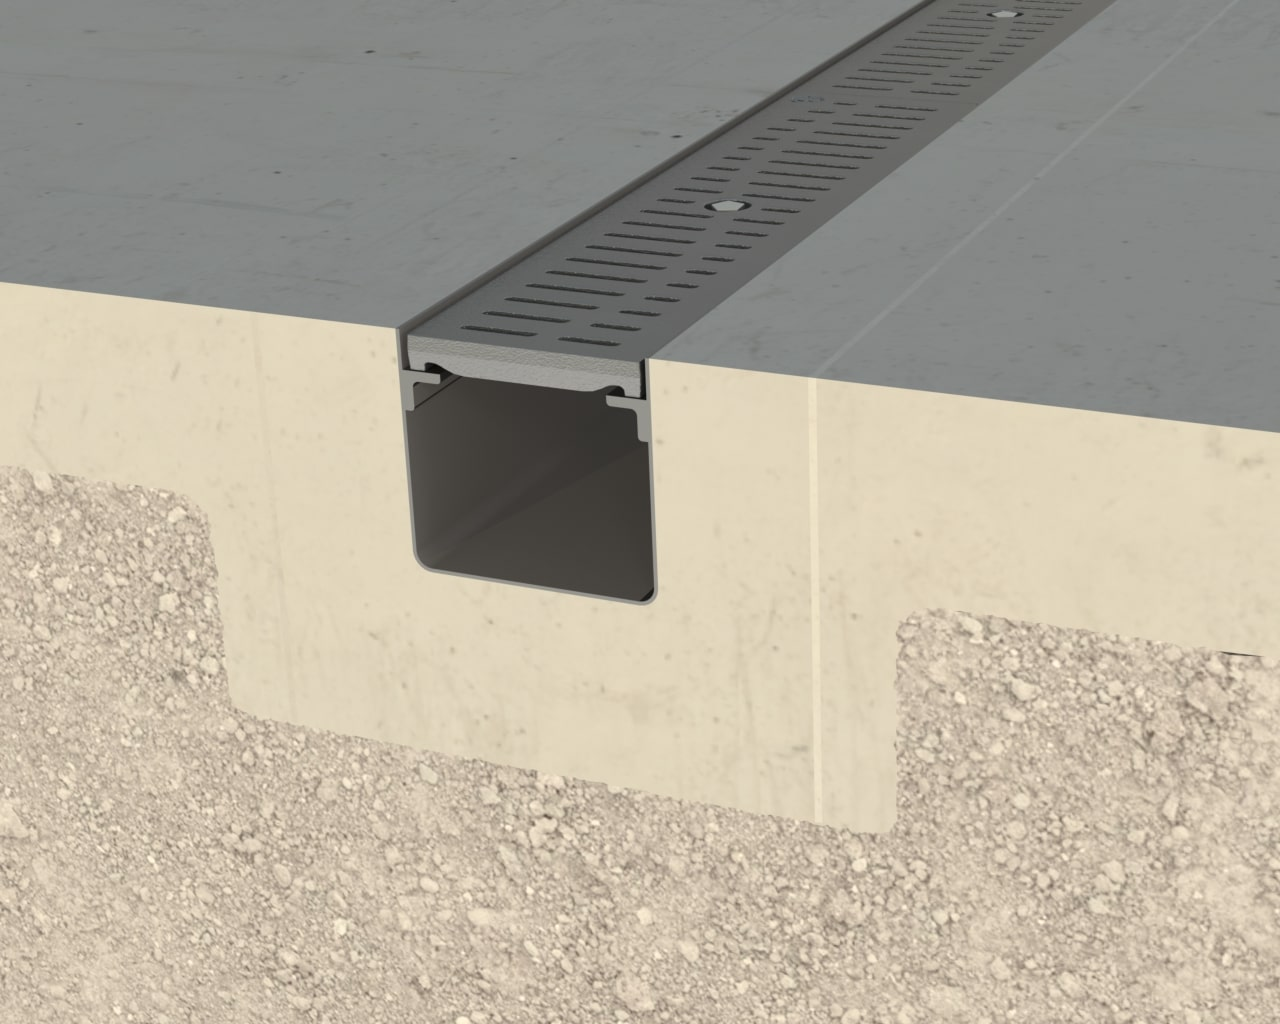 A Durable Downspout Connection Solution From Evergrate